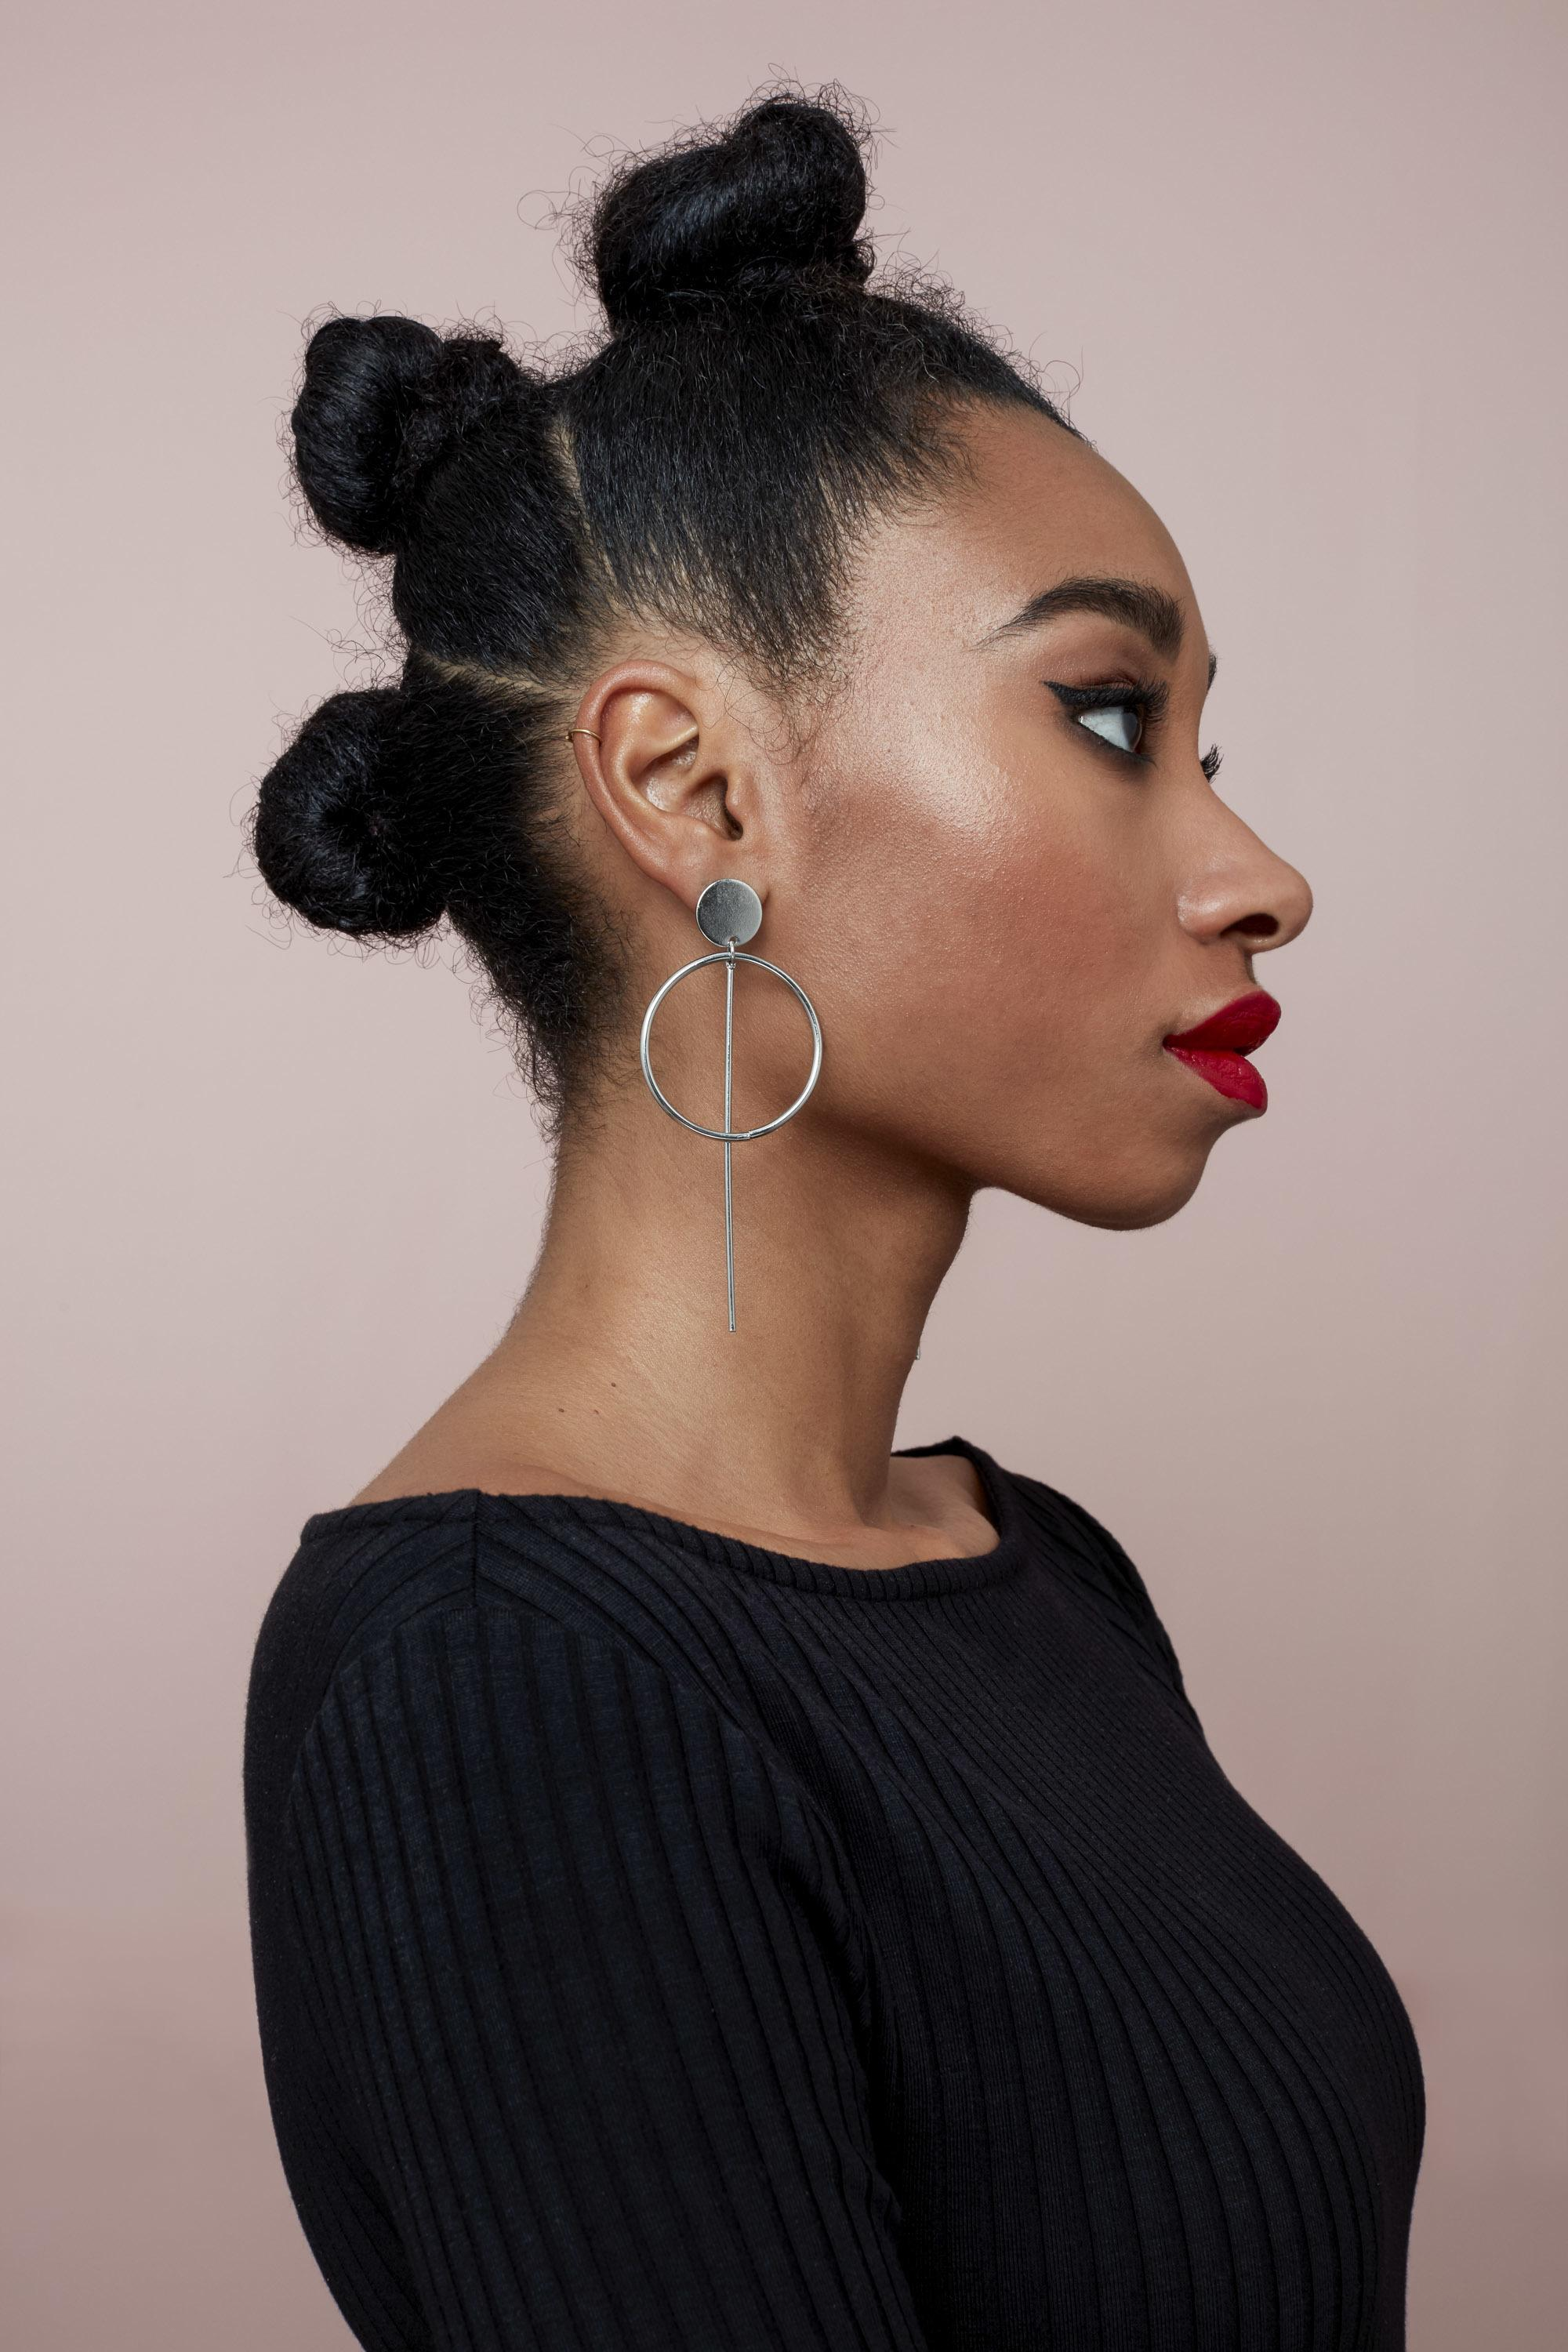 Natural hairstyles for Valentine's Day: Shot of model with triple bantu knot buns, wearing dangling earring and red lipstick, wearing all black in the All Things Hair UK Studio